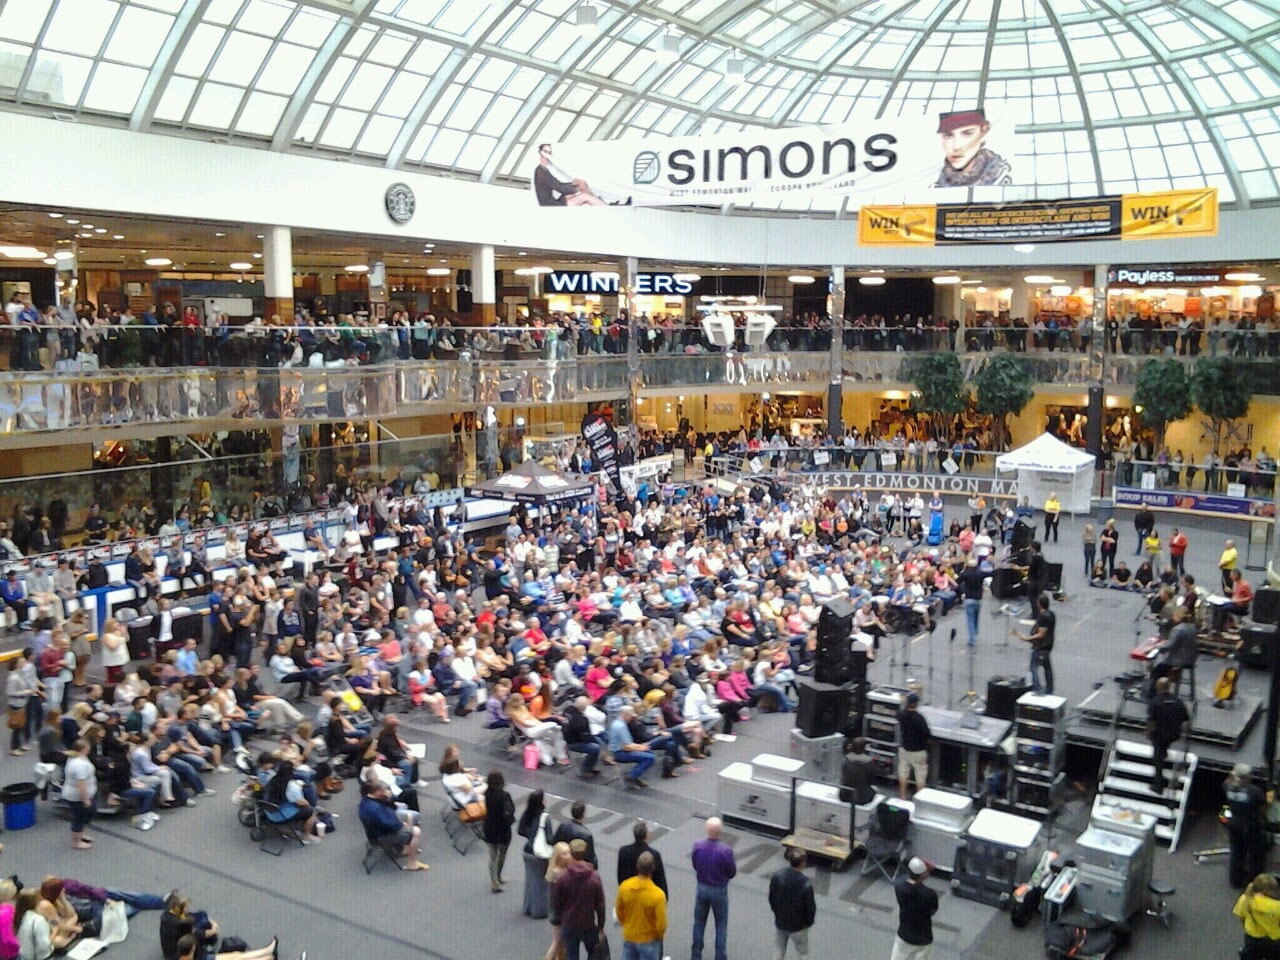 West Edmonton Mall skating rink ice palace concert